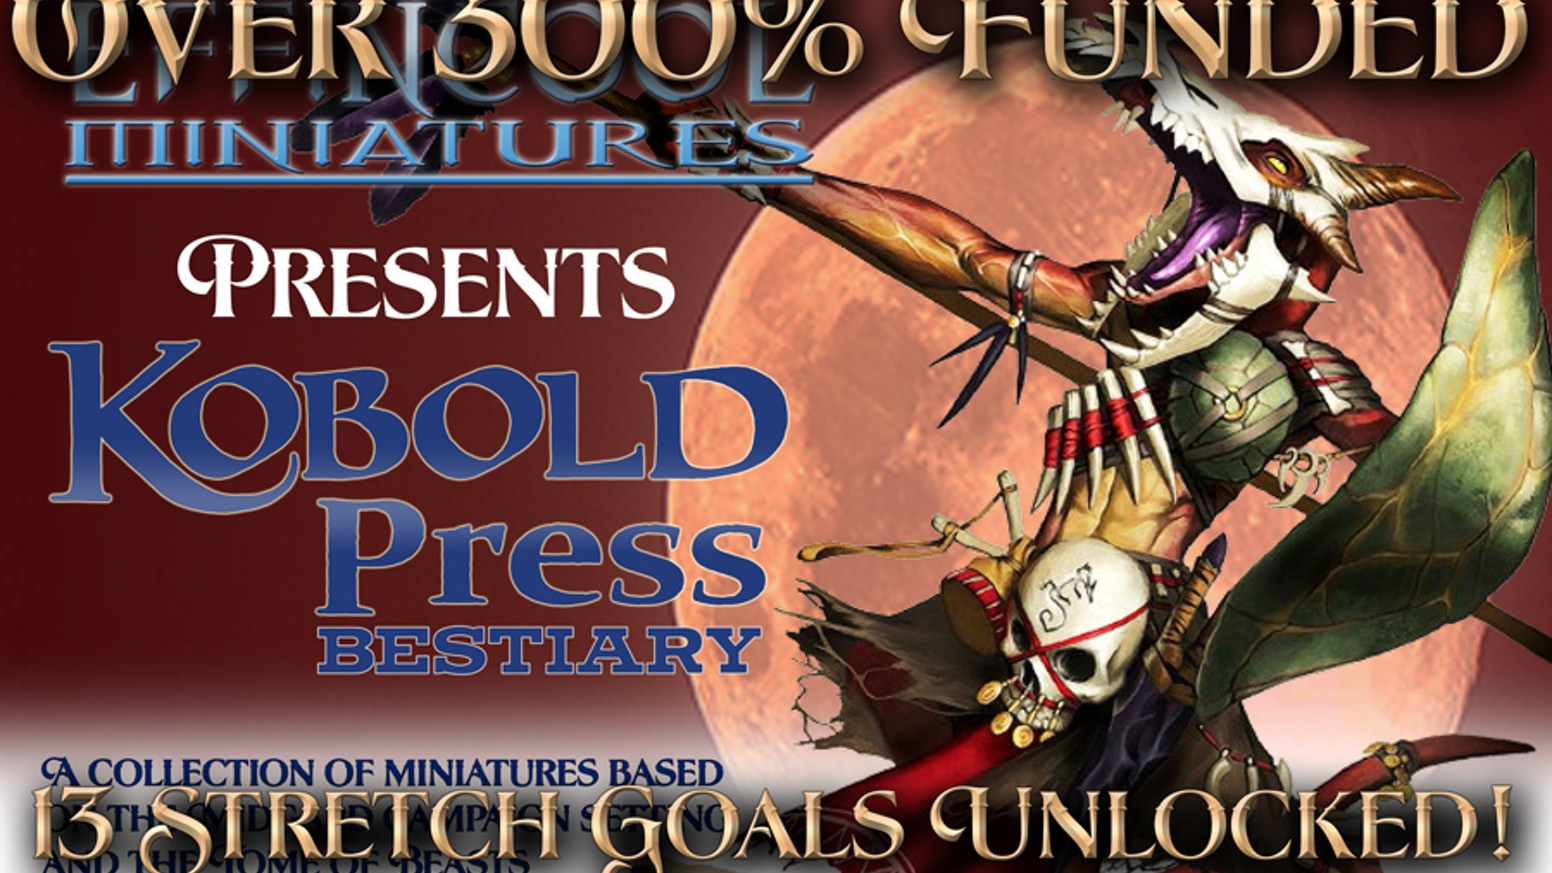 A collection of 28mm scaled miniatures based on the Midgard campaign setting as well as the Tome of Beasts from Kobold Press!